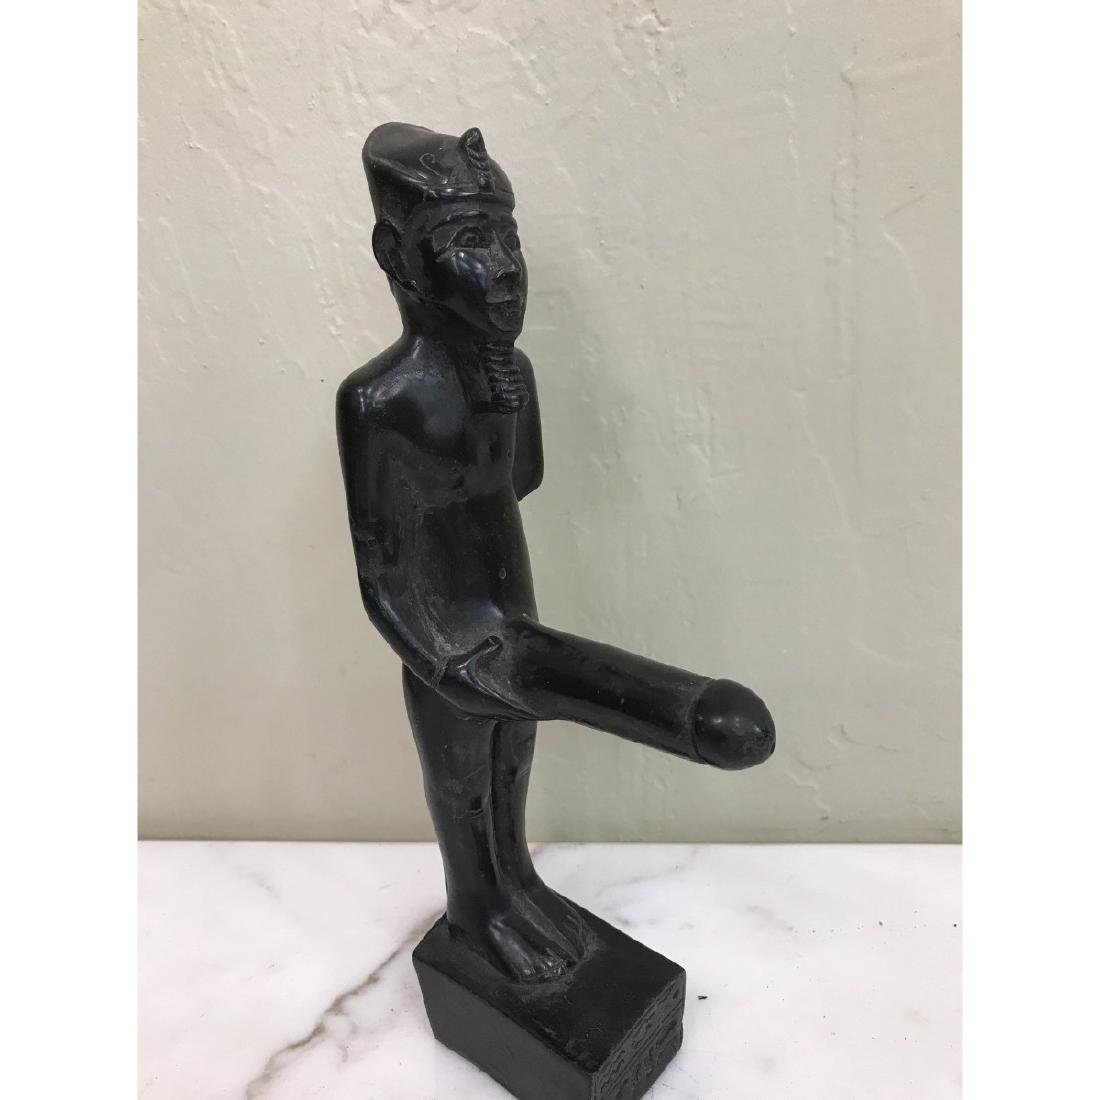 Erotic Carved Wood Statue of Egyptian Man - 3